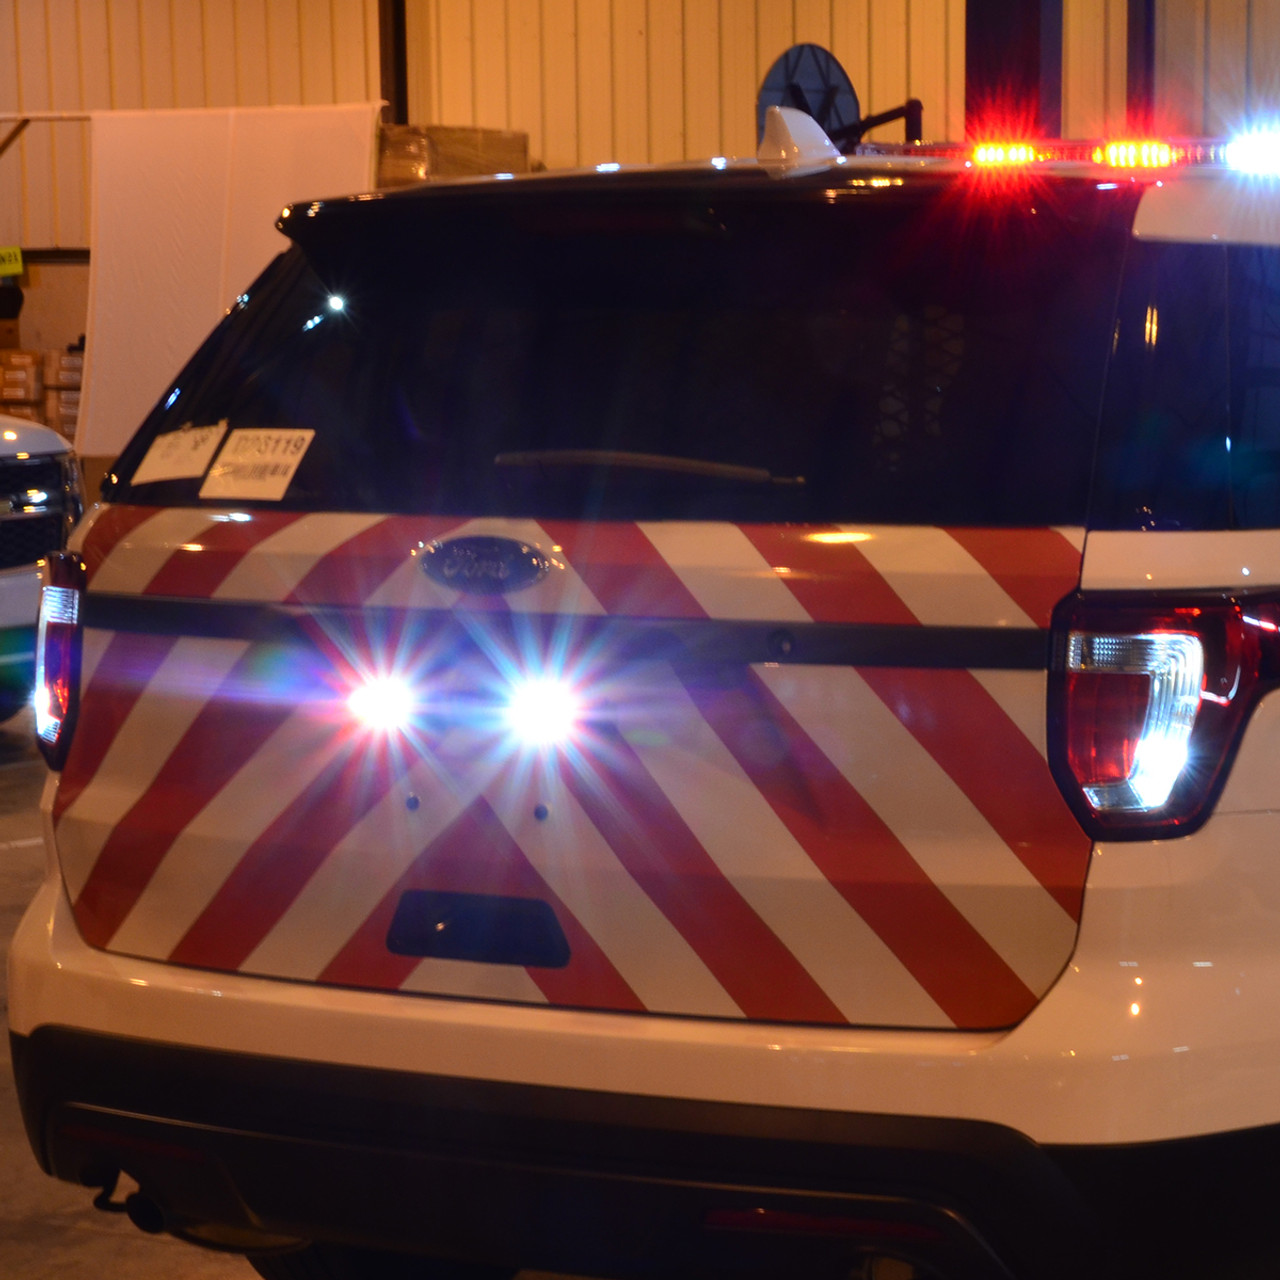 Police and Emergency Vehicle Chevrons Graphics with 3M Reflective Decal Stripes, fit Cars, SUV's, Trucks, Vans